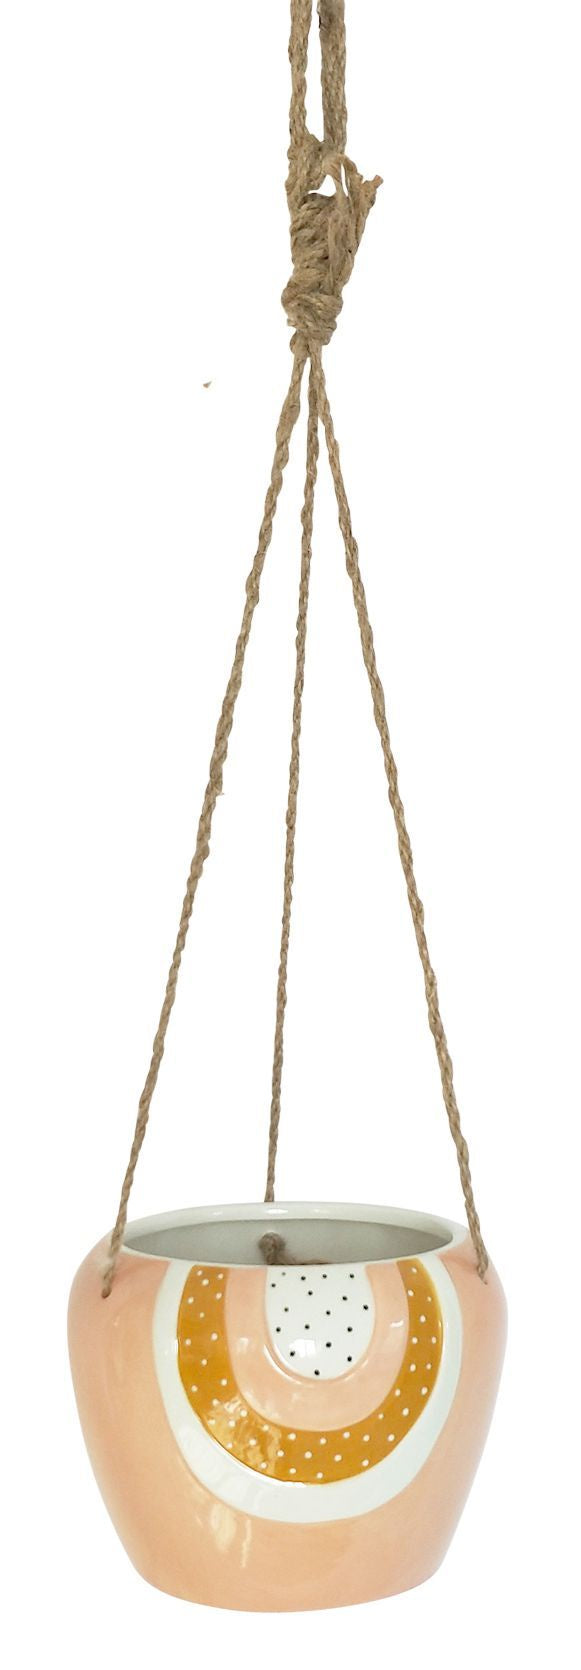 Woodstock Rainbow Hanging Planter Pink Small